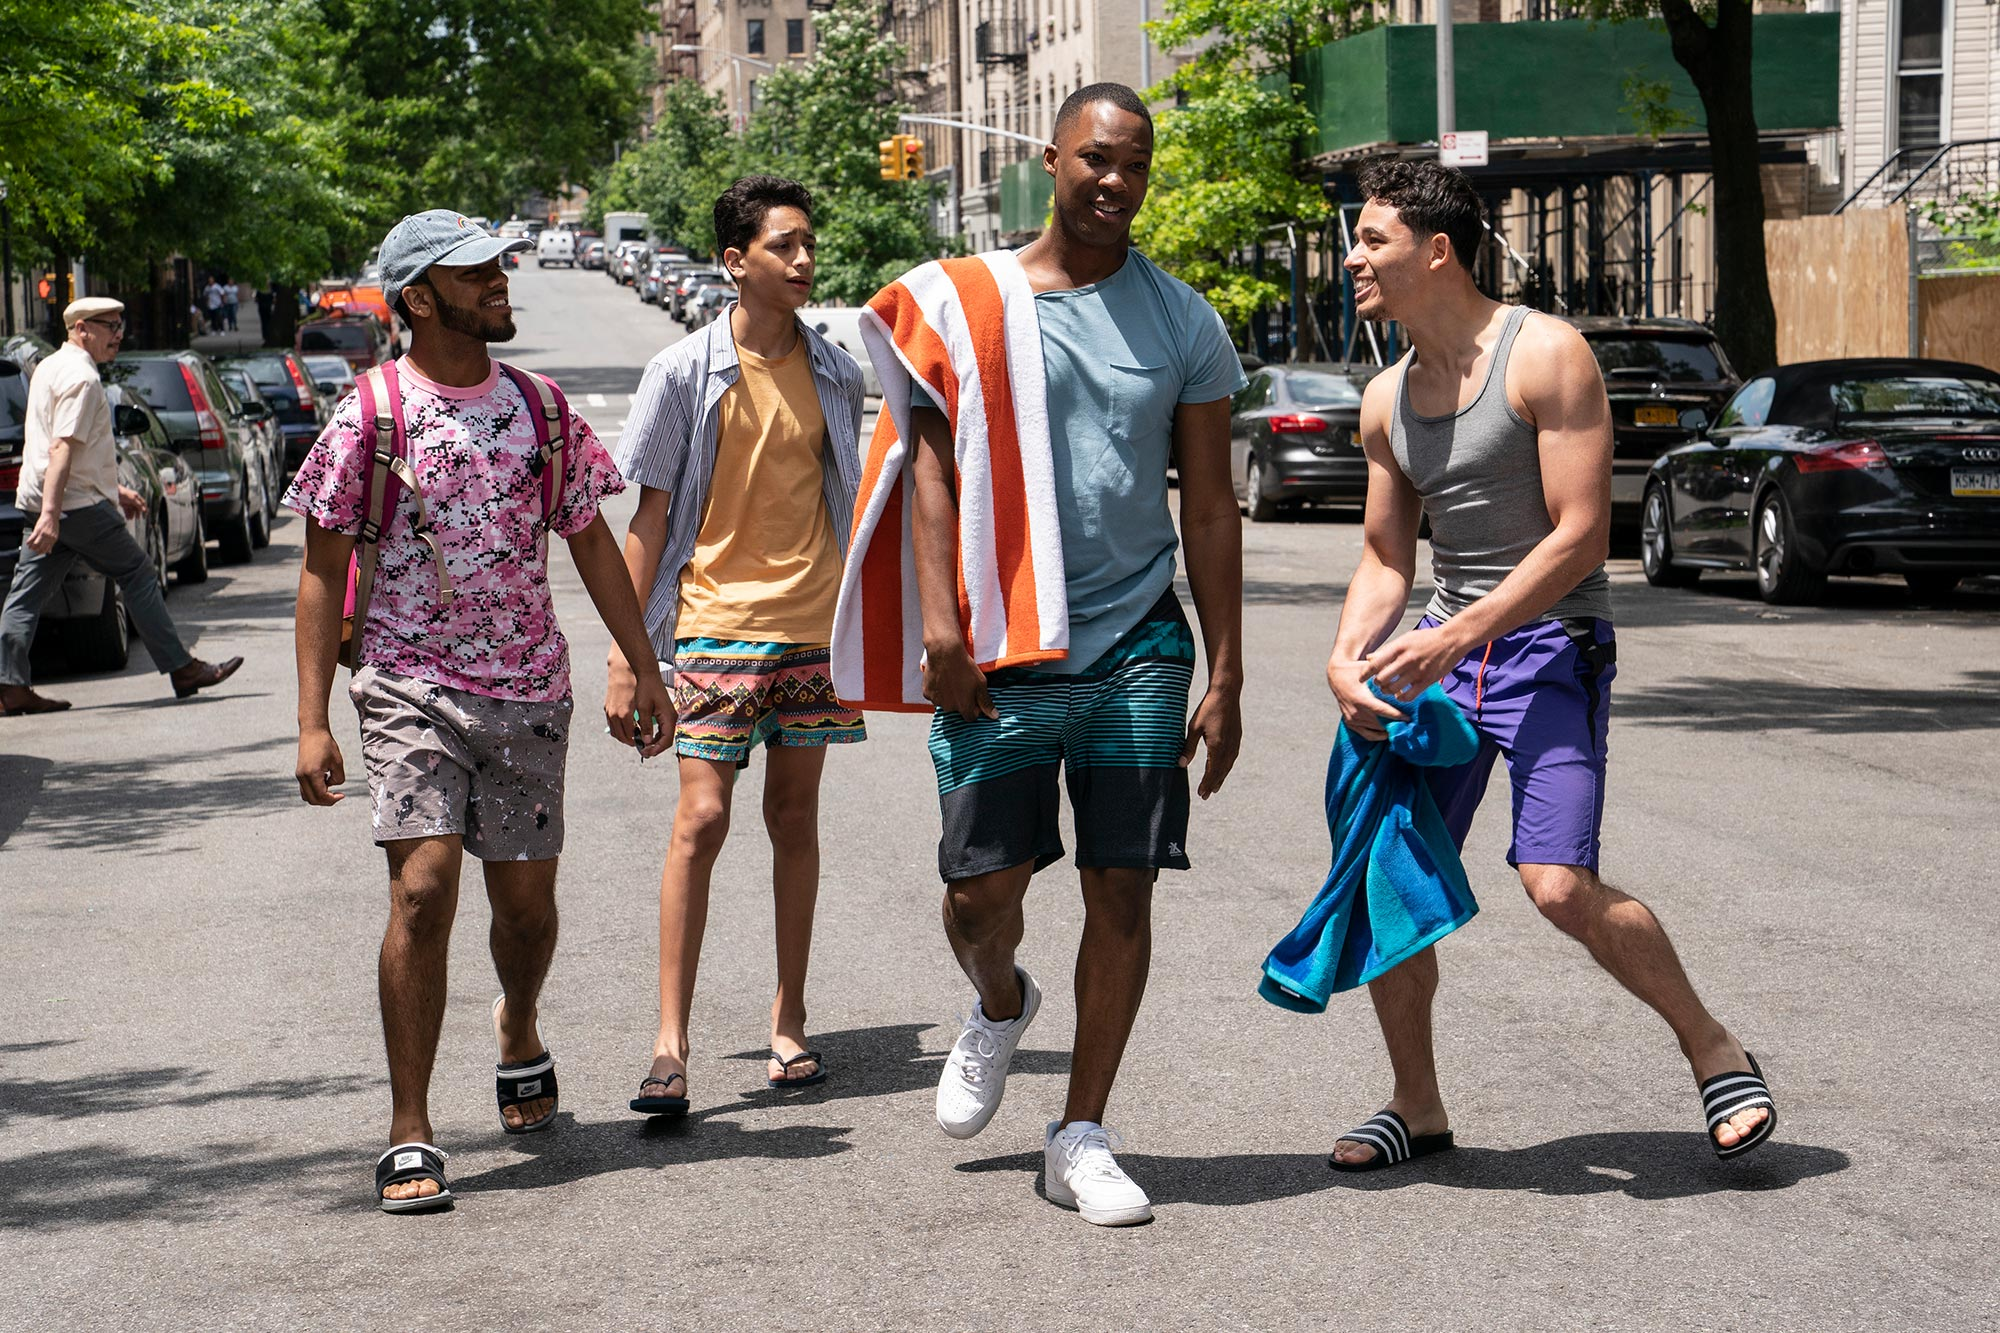 In the Heights review: Lin-Manuel Miranda's vibrant musical dazzles on  screen | EW.com